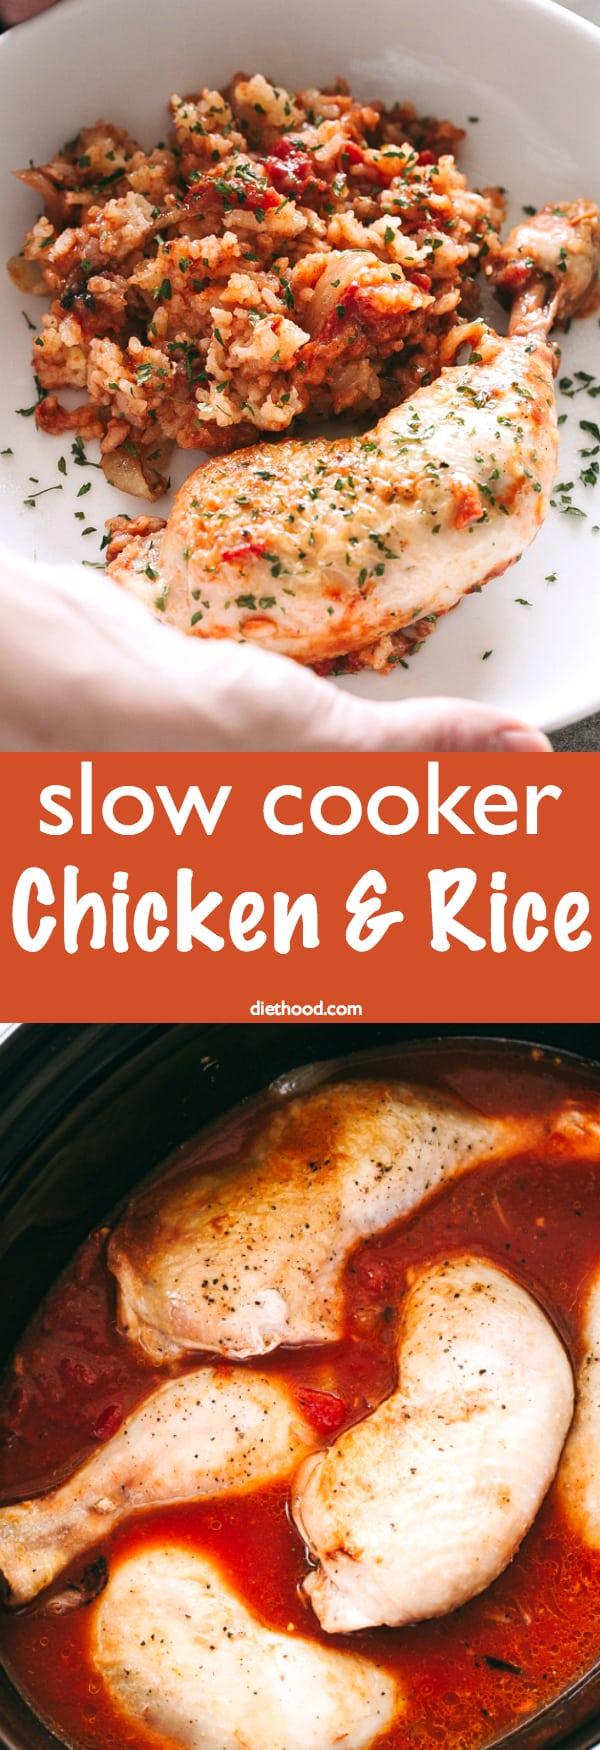 Slow Cooker Chicken and Rice Recipe - Your favorite chicken and rice casserole prepared in the crock pot! Made with brown rice, tomatoes, and chicken, this is a healthy, delicious, and easy slow cooker recipe perfect for those busy weeknights.